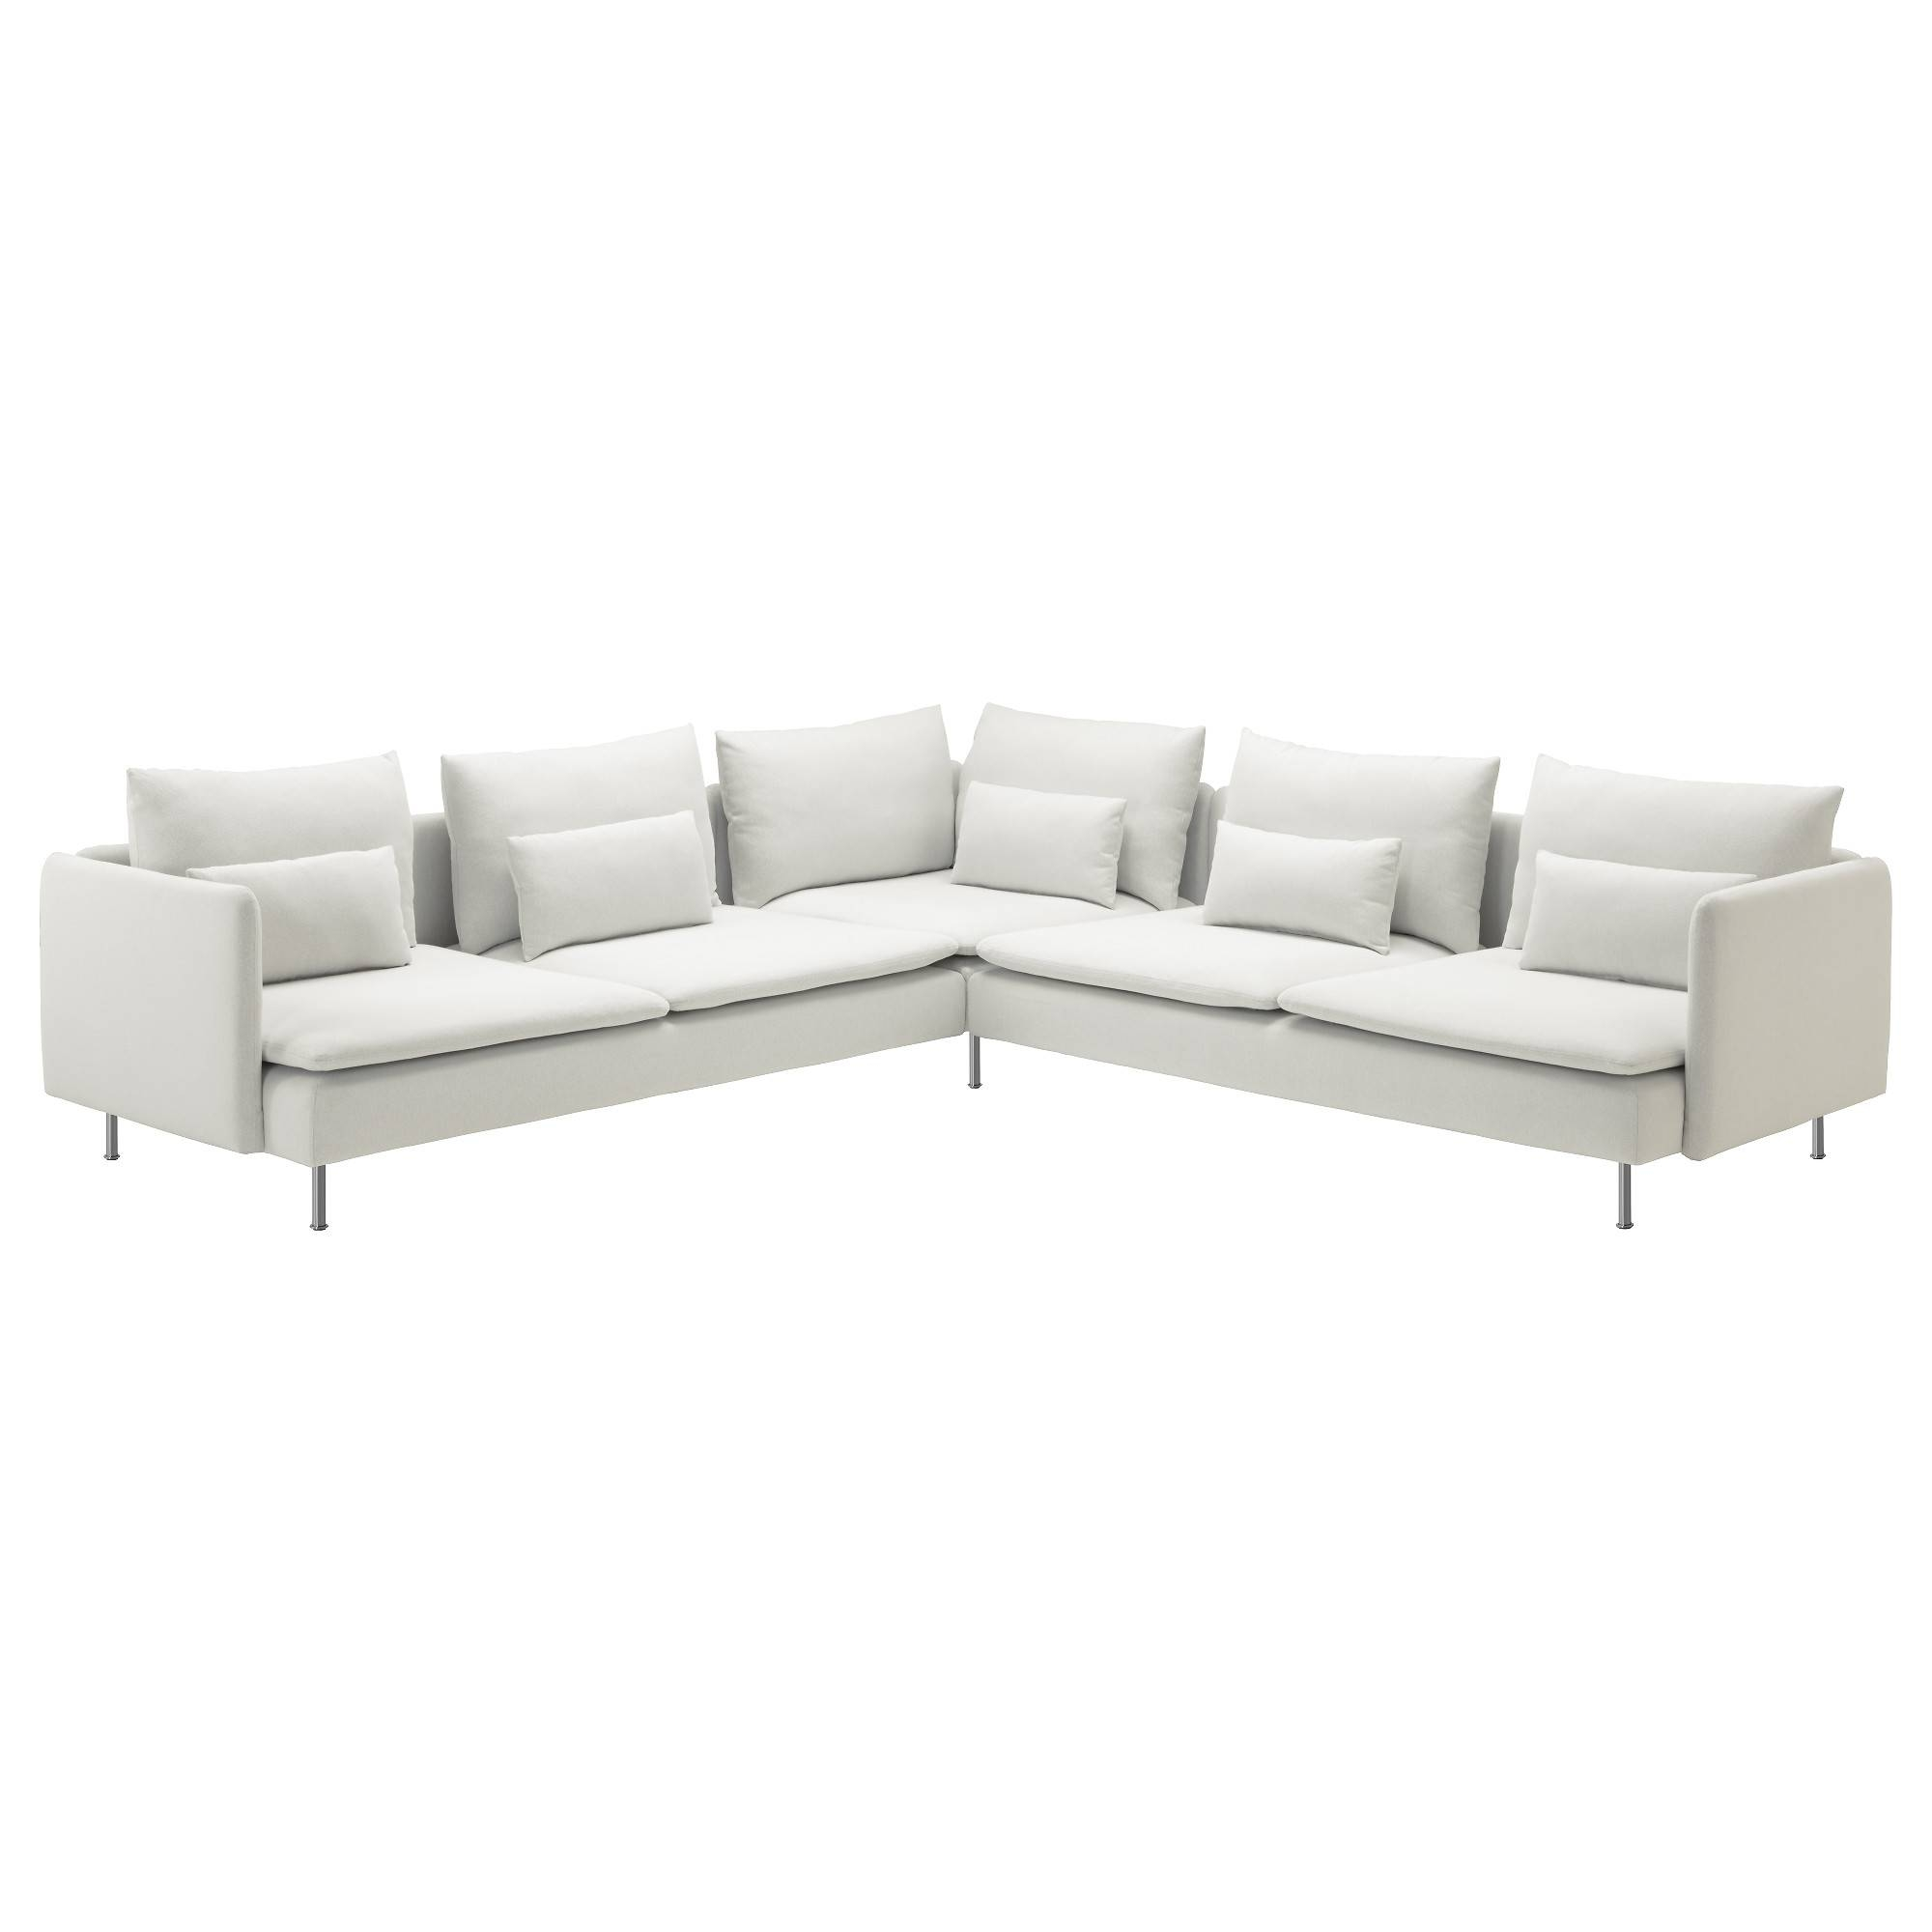 Söderhamn Series - Ikea intended for 2 Seat Sectional Sofas (Image 25 of 30)